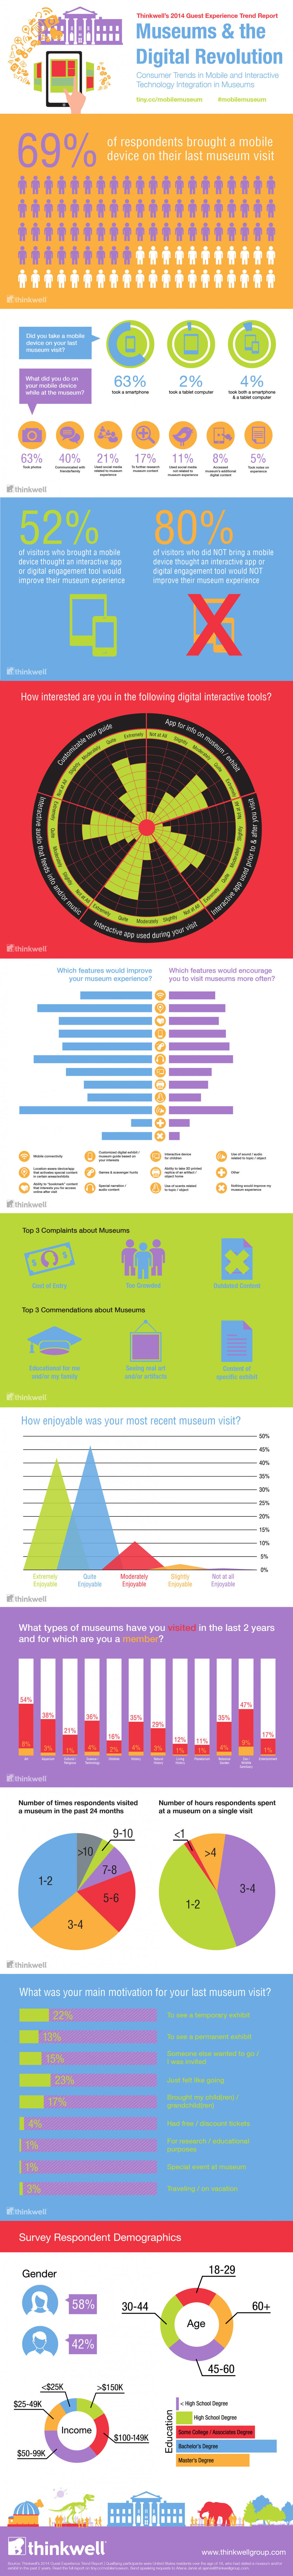 Museums & the Digital Revolution Infographic